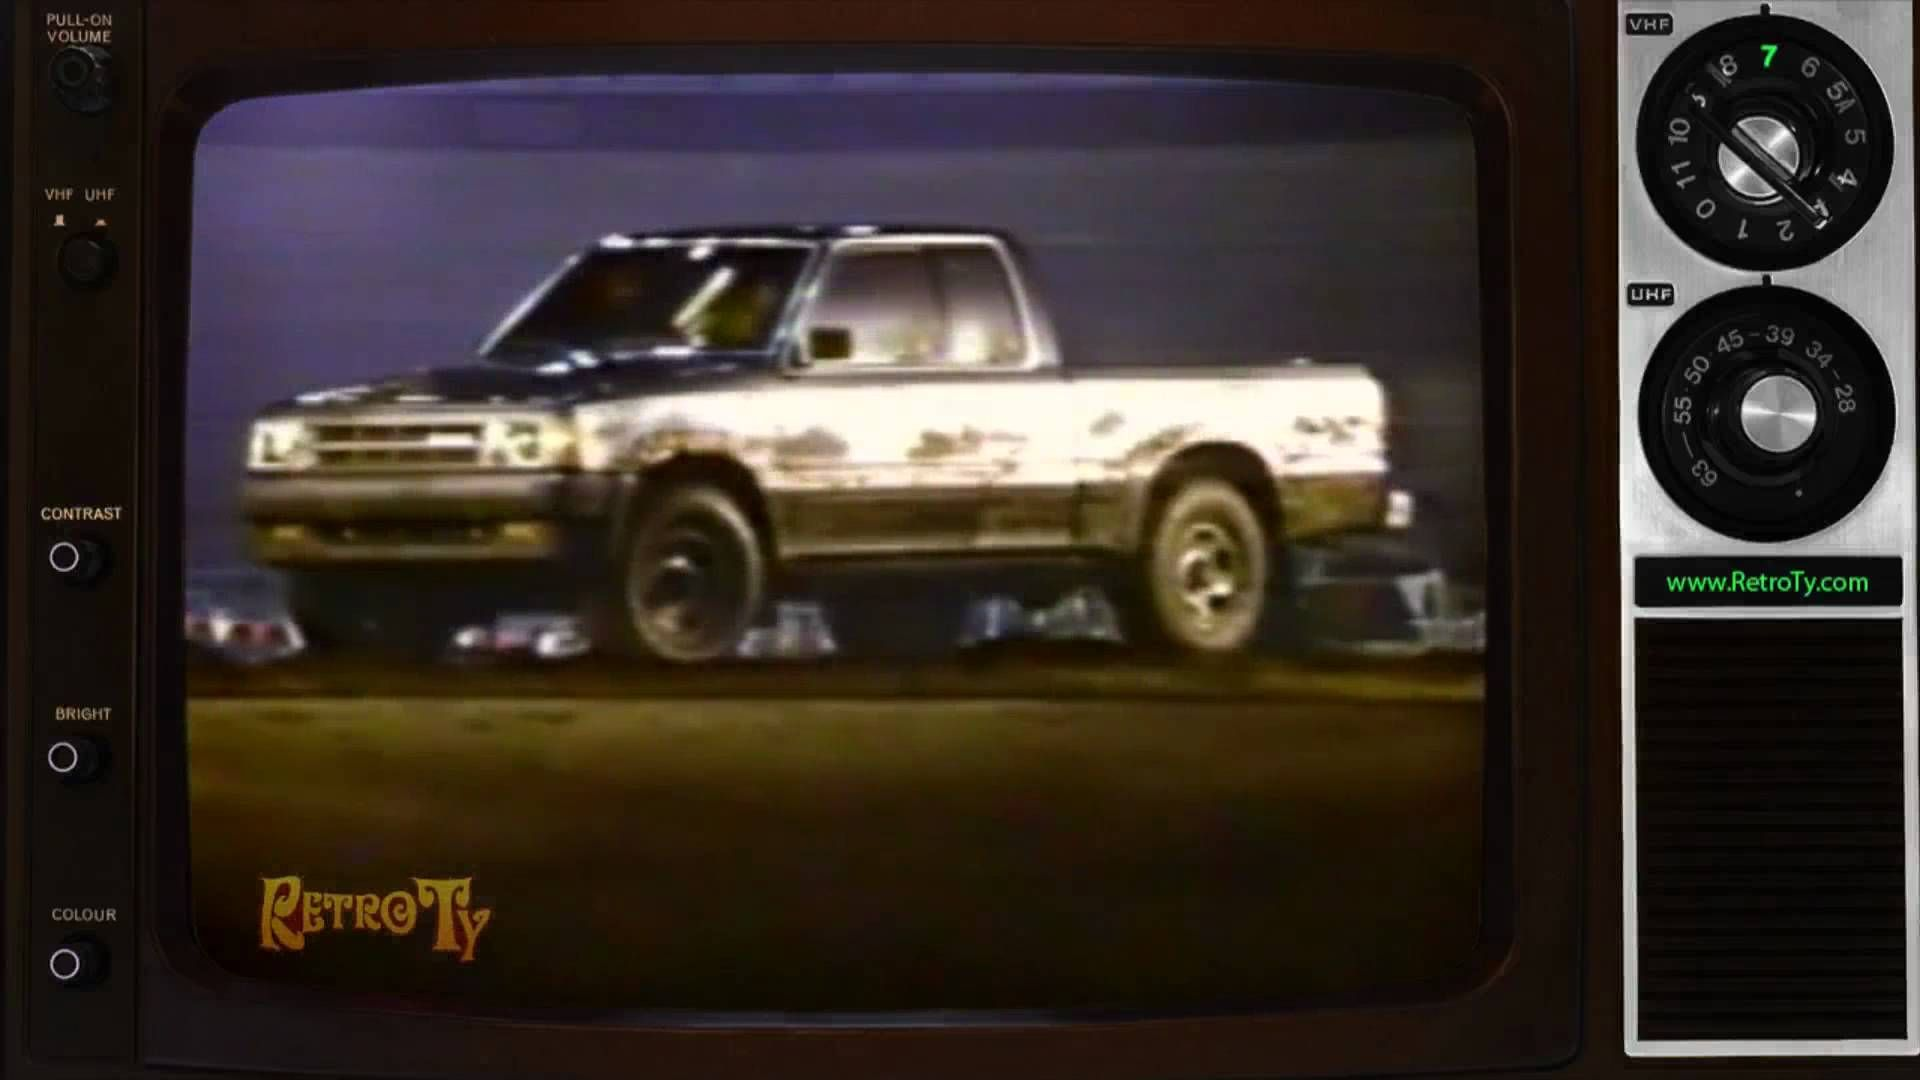 Pin By Mike On Mazda B2600 In 2020 Mazda Badass Commercial